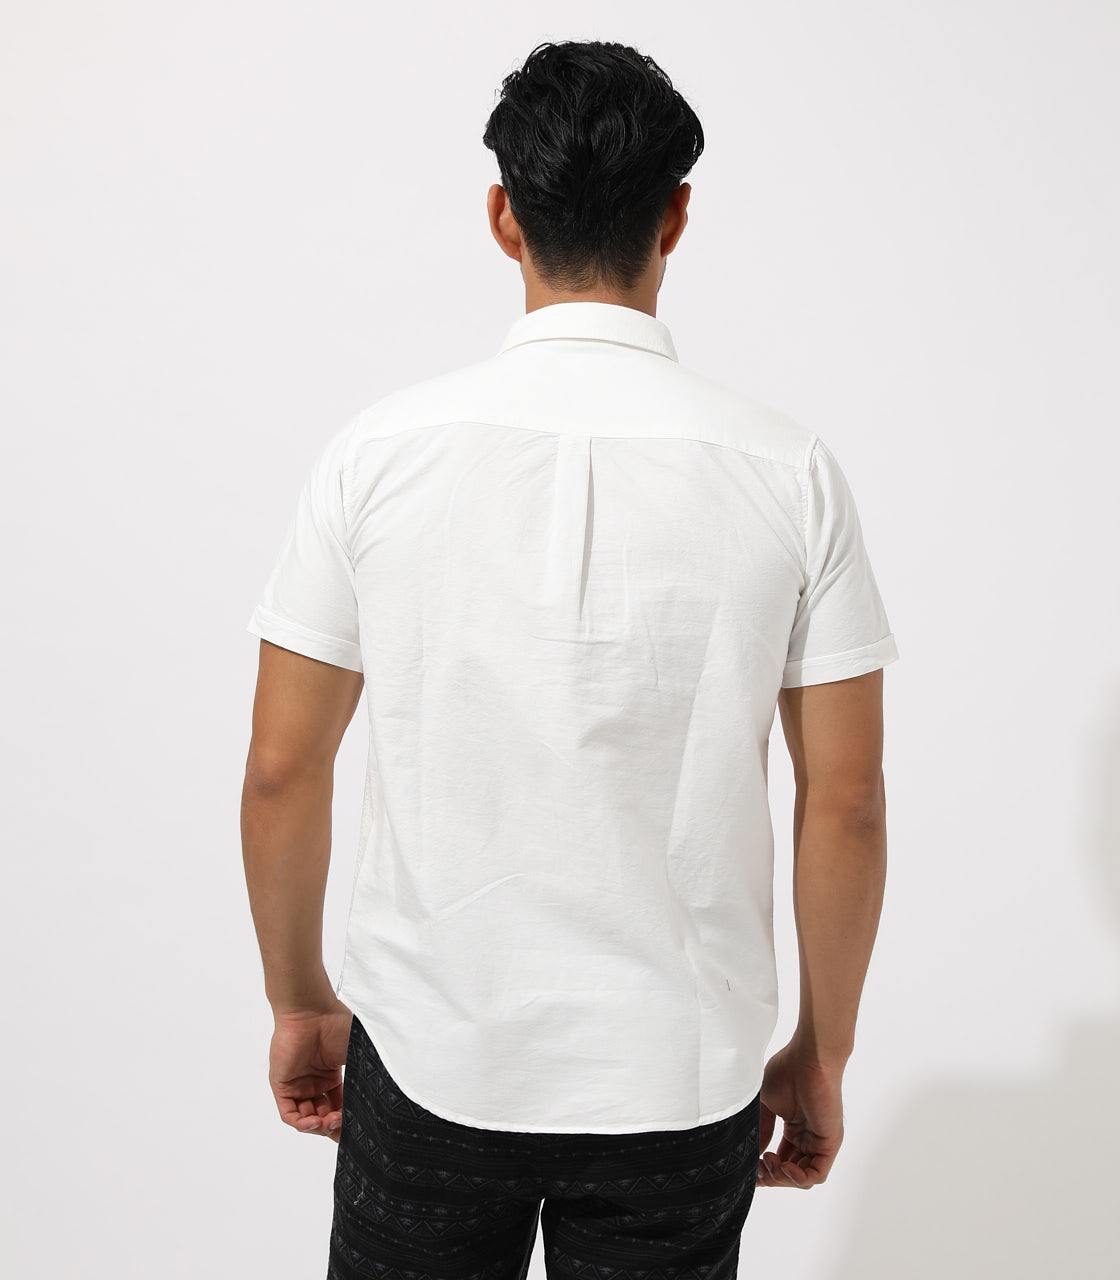 OXFORDS/SSHIRT 詳細画像 WHT 6